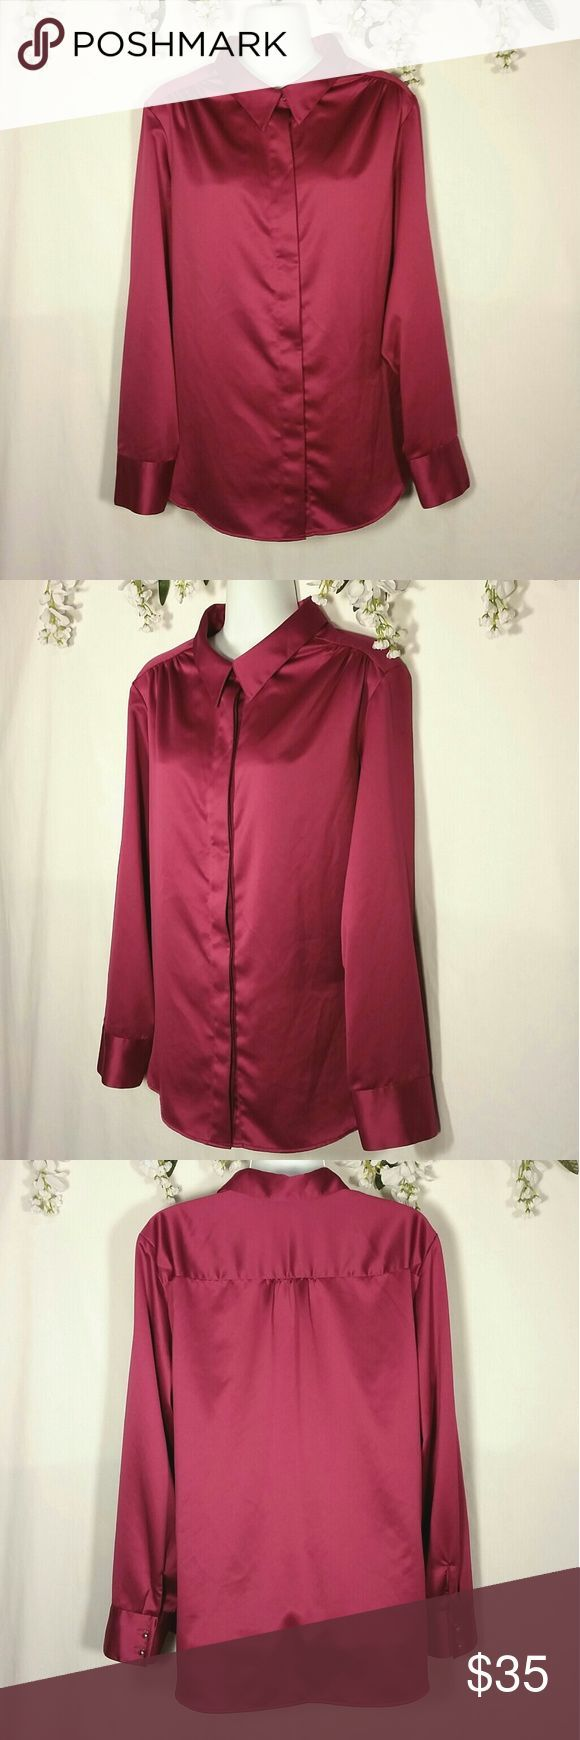 Nwot Coldwater Creek Button Up Blouse New Without Tags Never Worn Button Up L With Images Coldwater Creek Dress Creek Dress Long Sleeve Shirt Dress